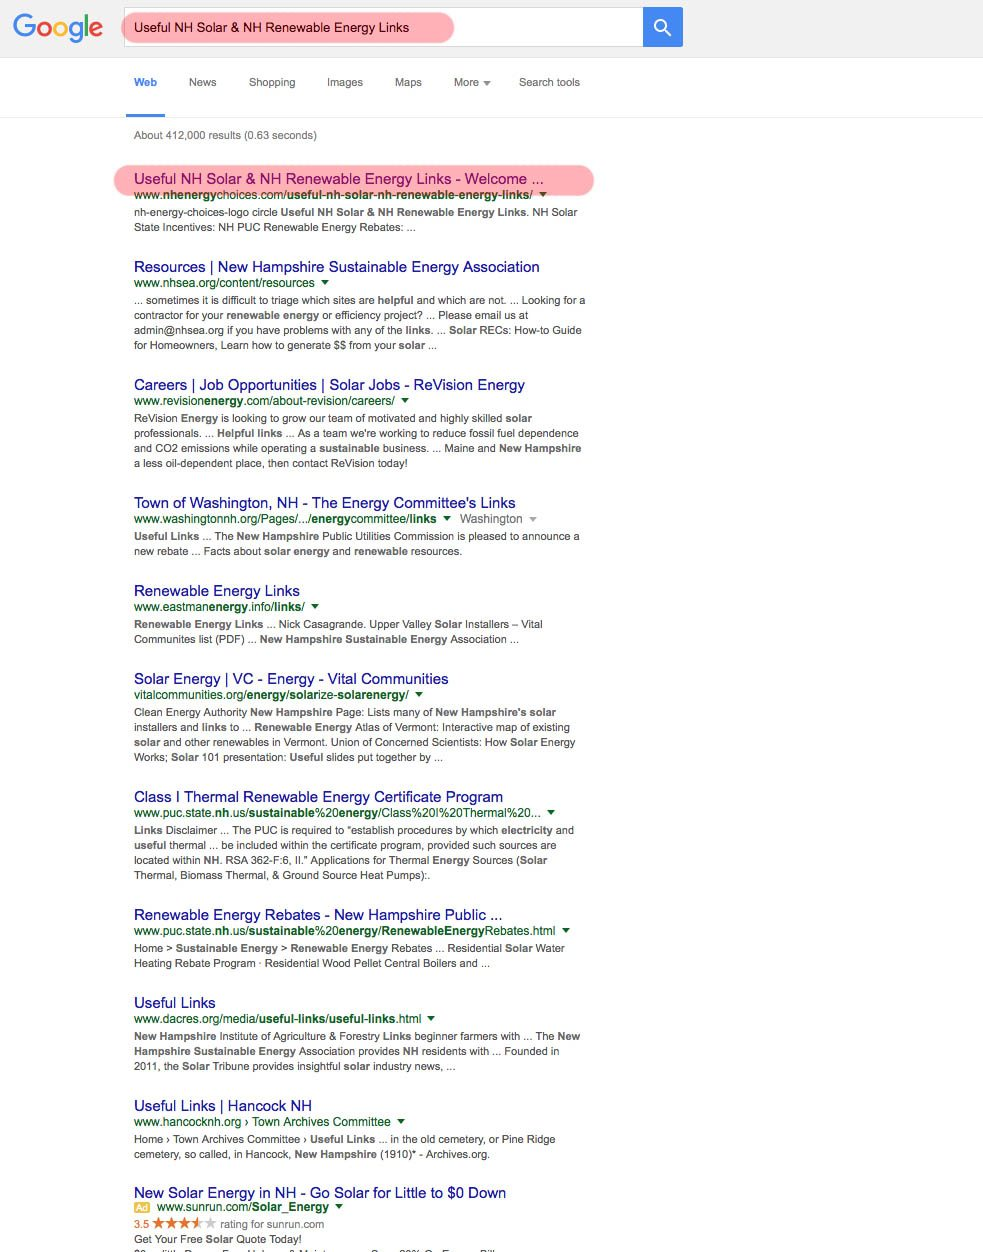 Nh energy choices seo report for nh welcome to svend design useful nh solar nh renewable energy links2 xflitez Gallery